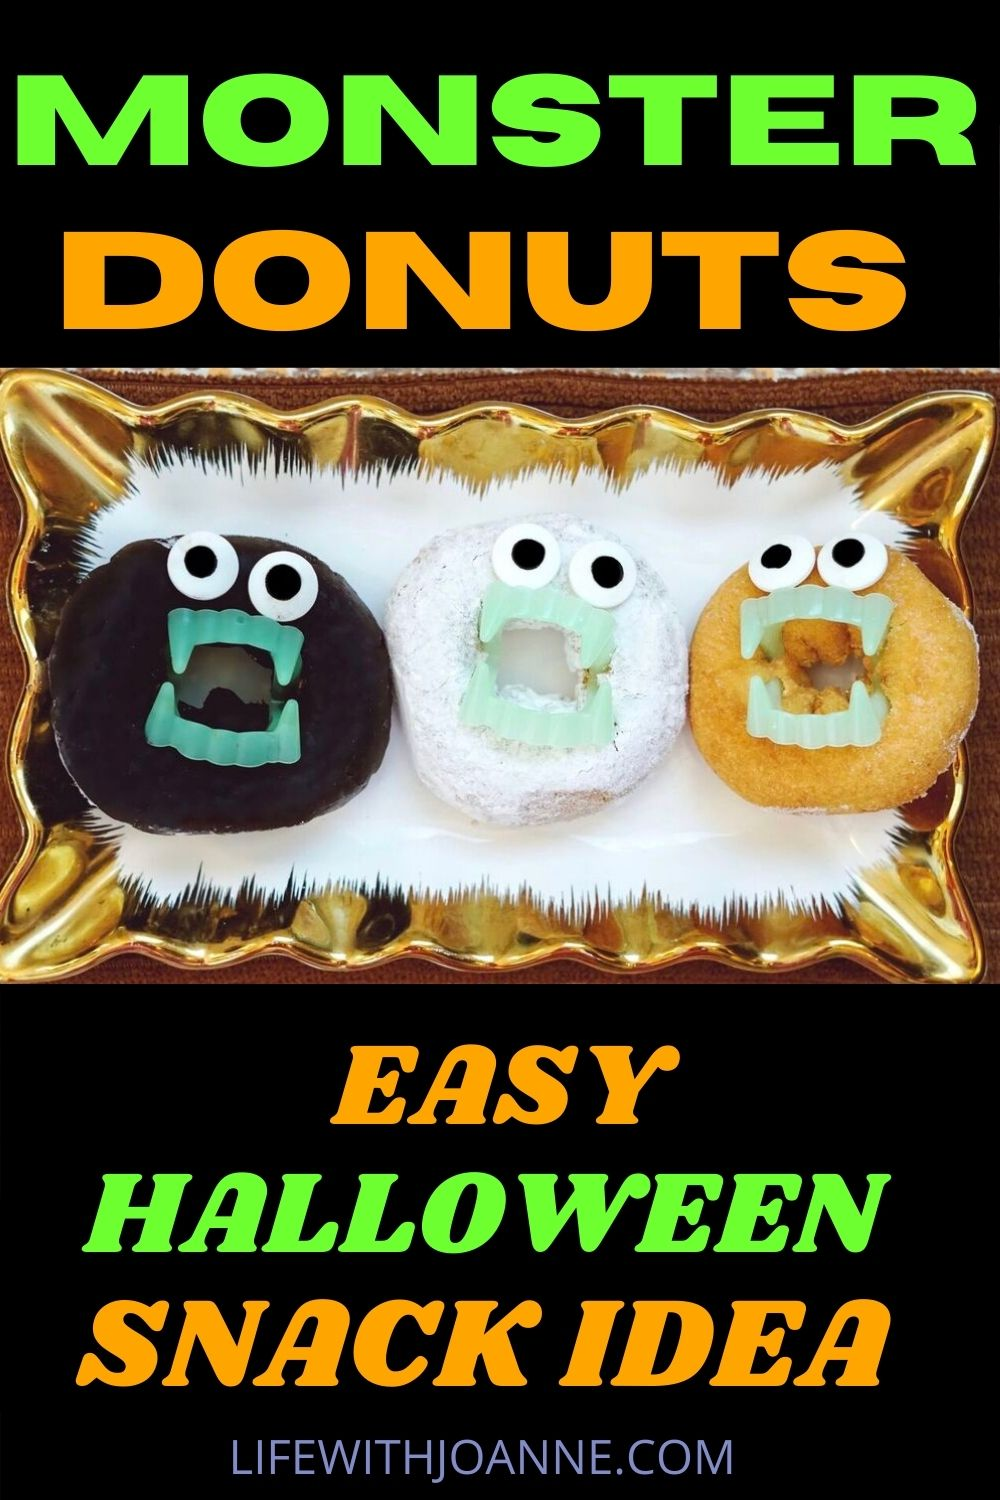 monster donuts easy halloween snack idea